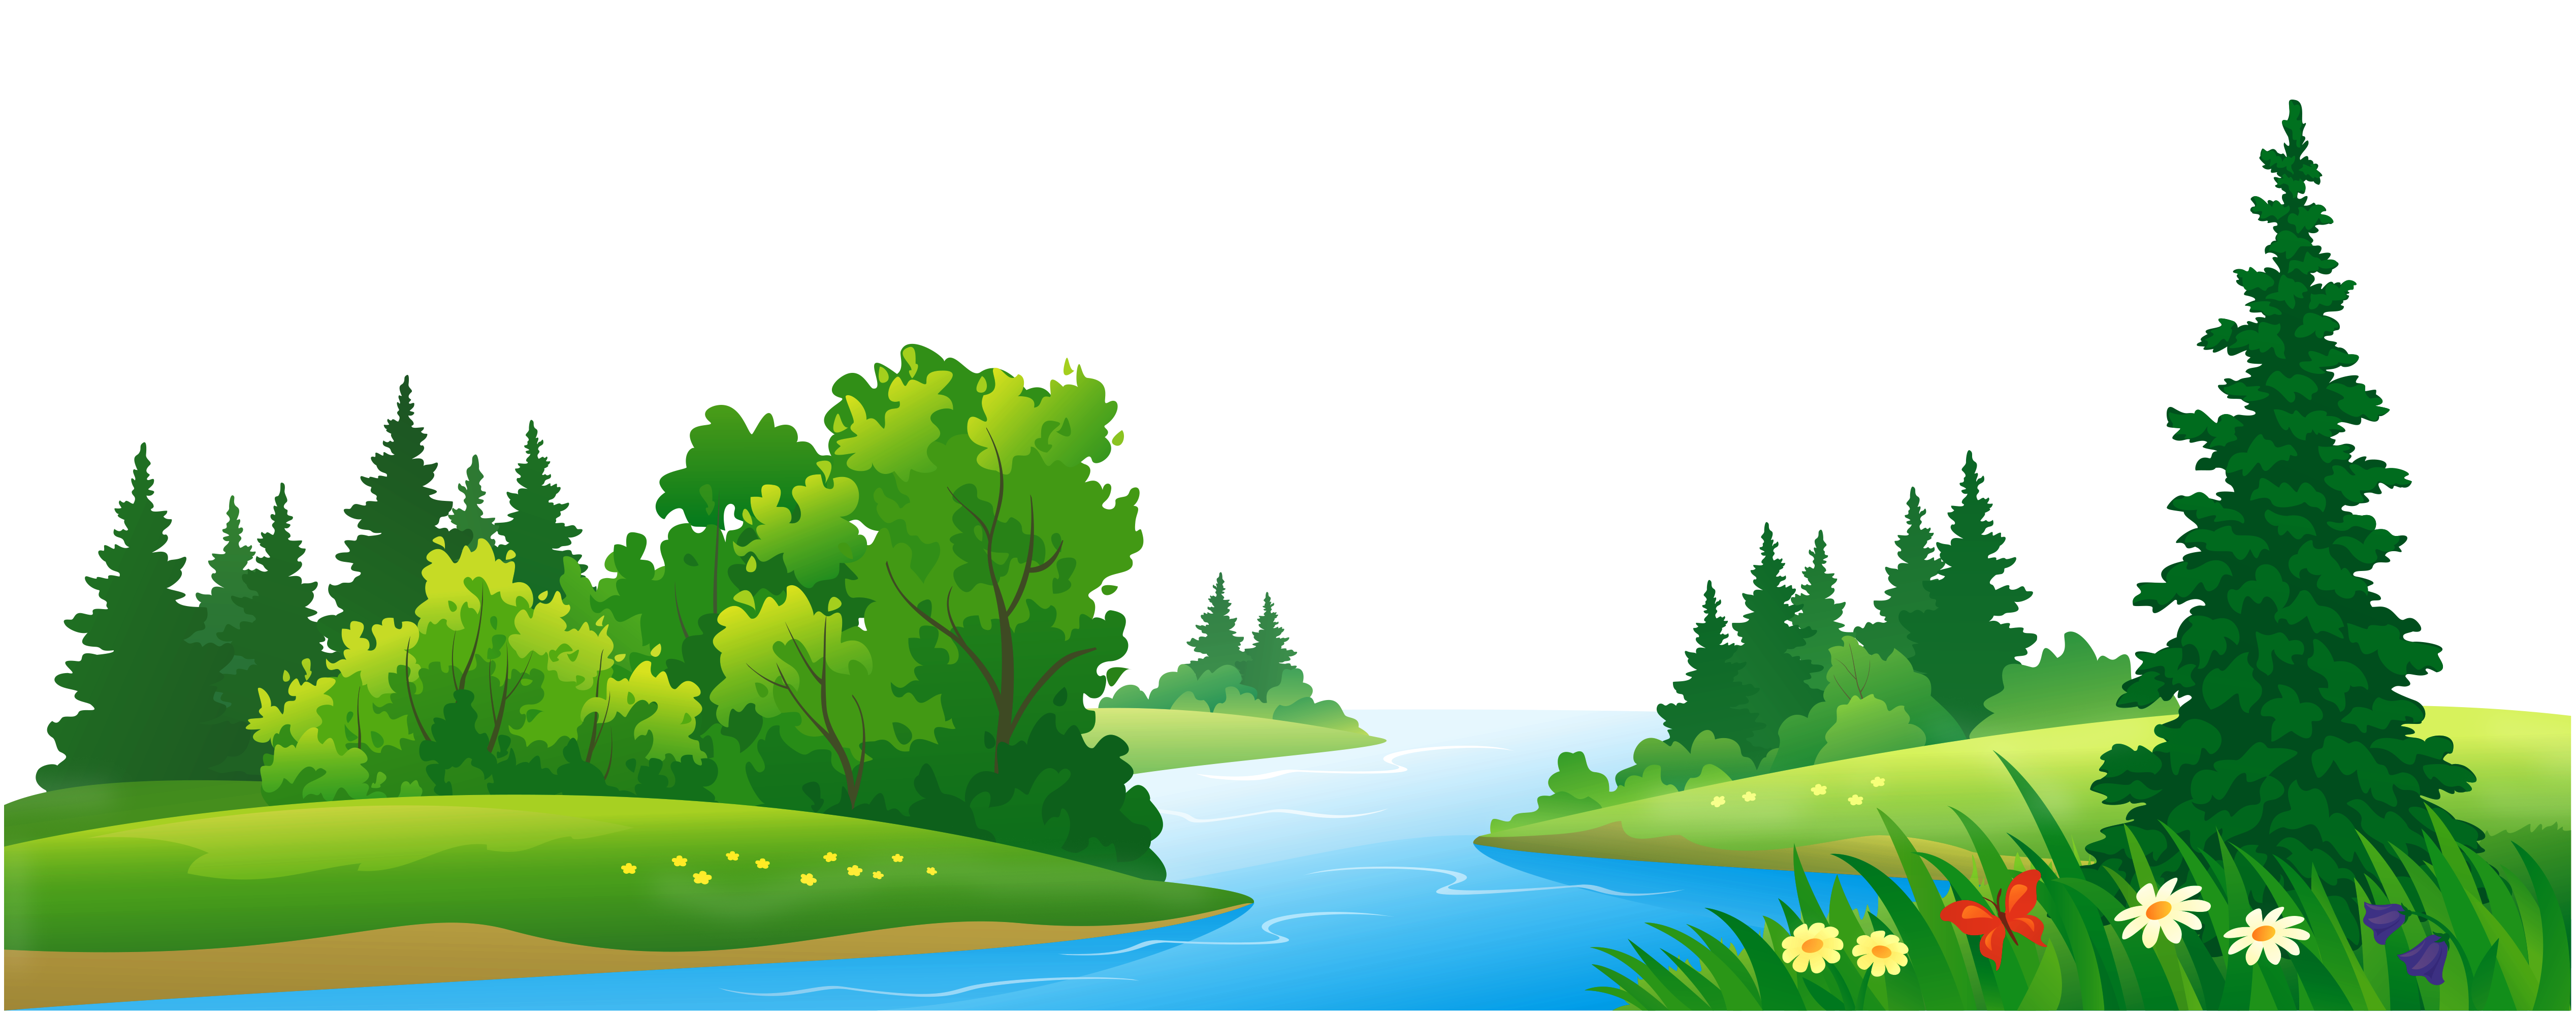 Grass Lake And Trees Transparent Png Clipart Gallery Yopriceville High Quality Images And Transparent Png Free Clipart Nature Clip Art Grass Lake